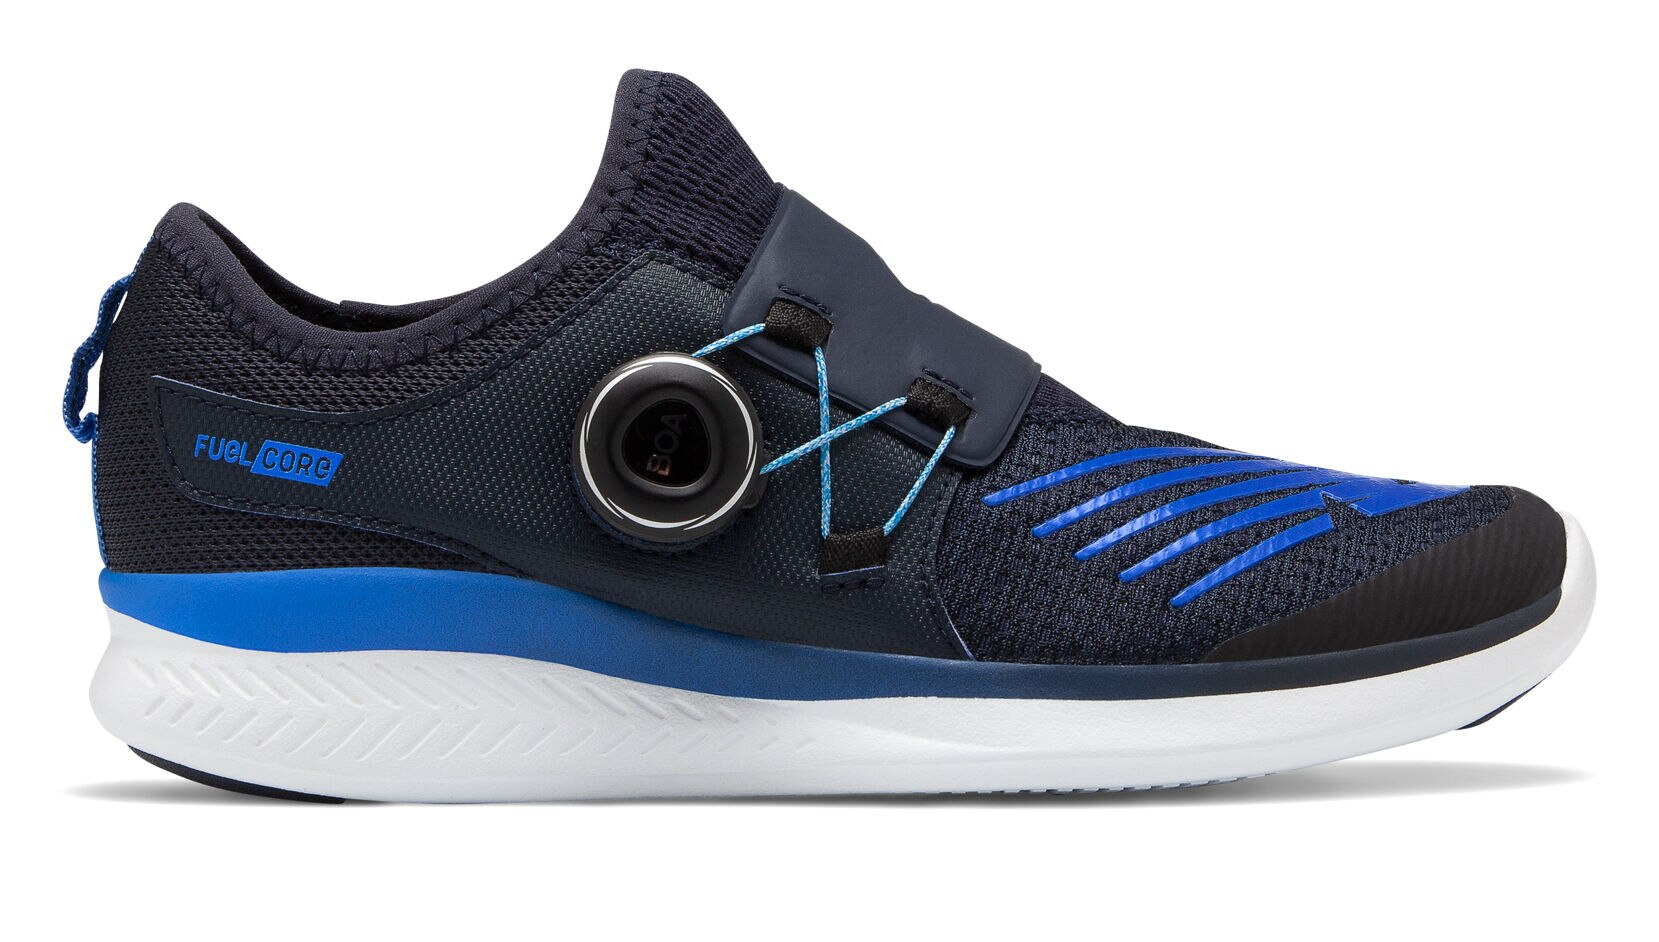 FuelCore Reveal - Eclipse / Cobalt by New Balance - Ponseti's Shoes